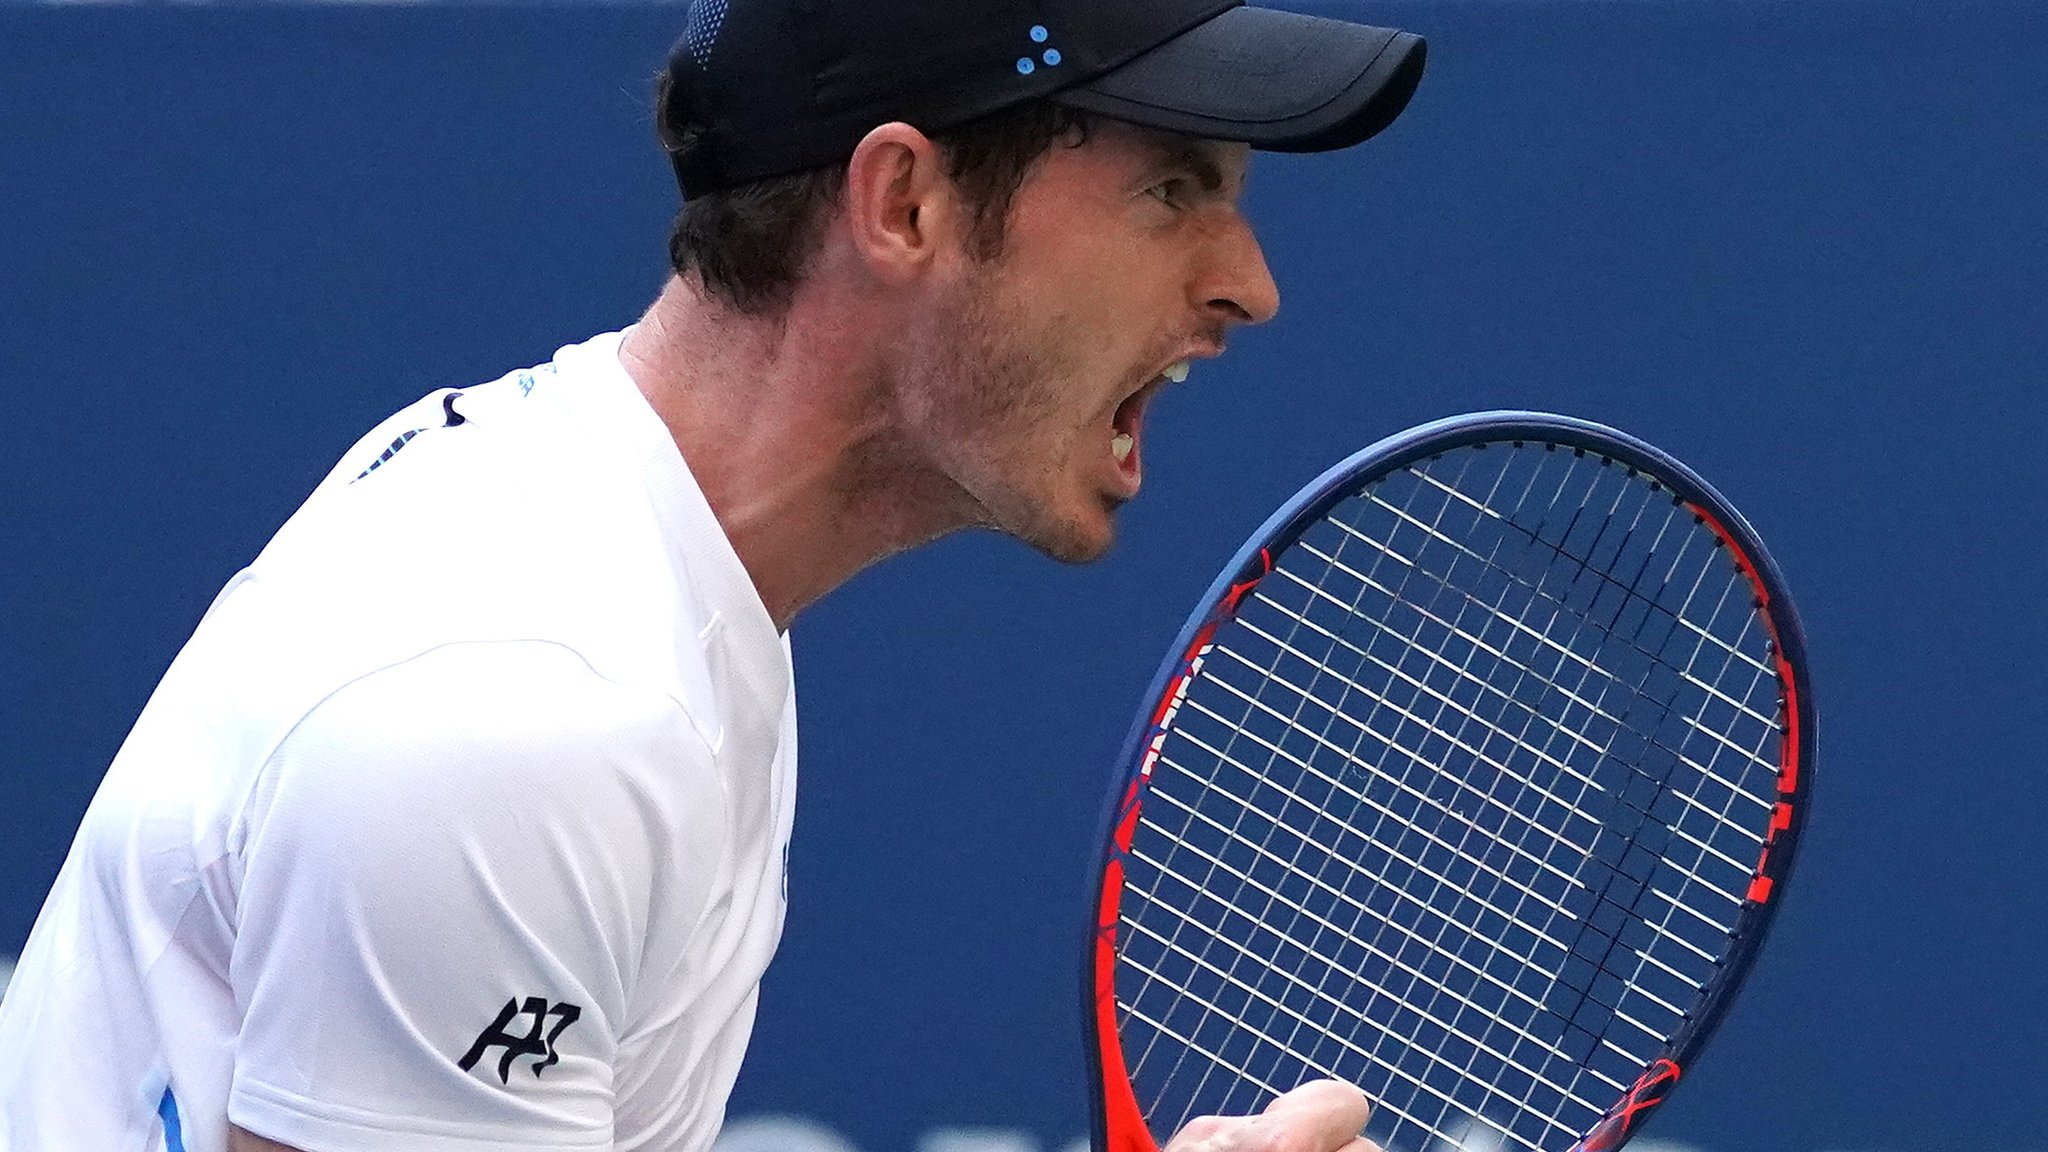 Murray through to face Goffin at Shenzhen Open